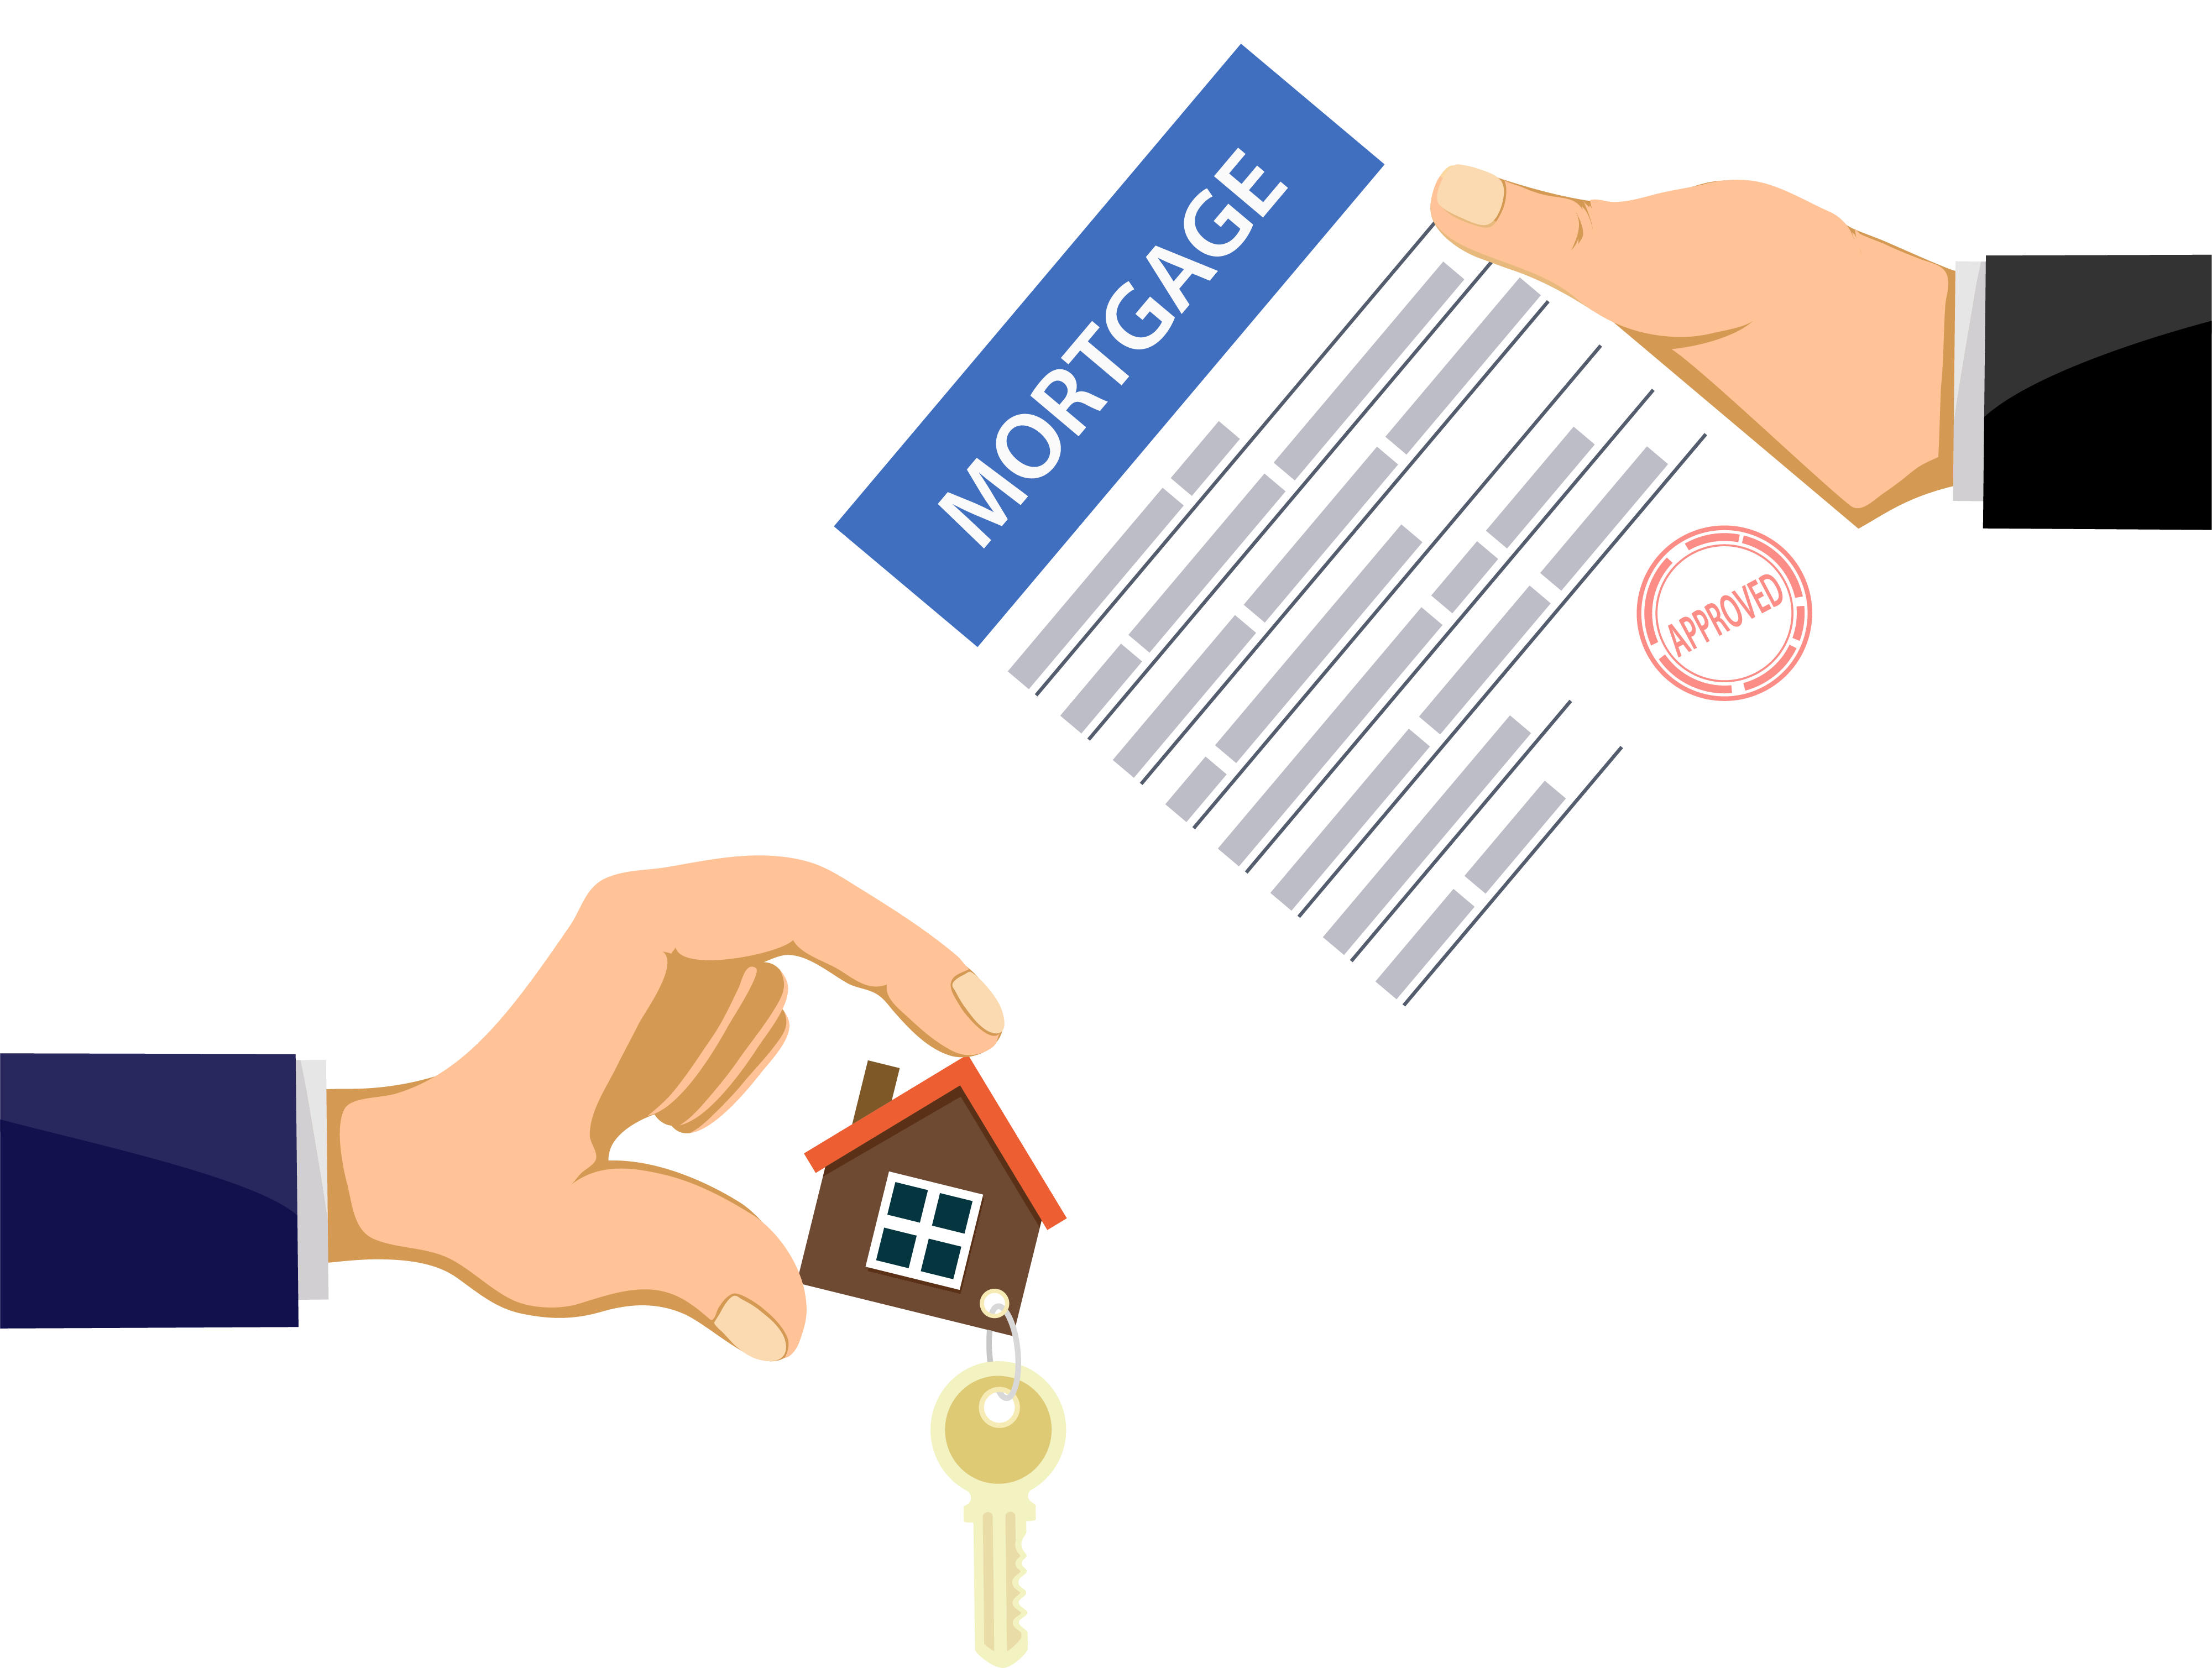 Hands holding house keys and mortgage papers